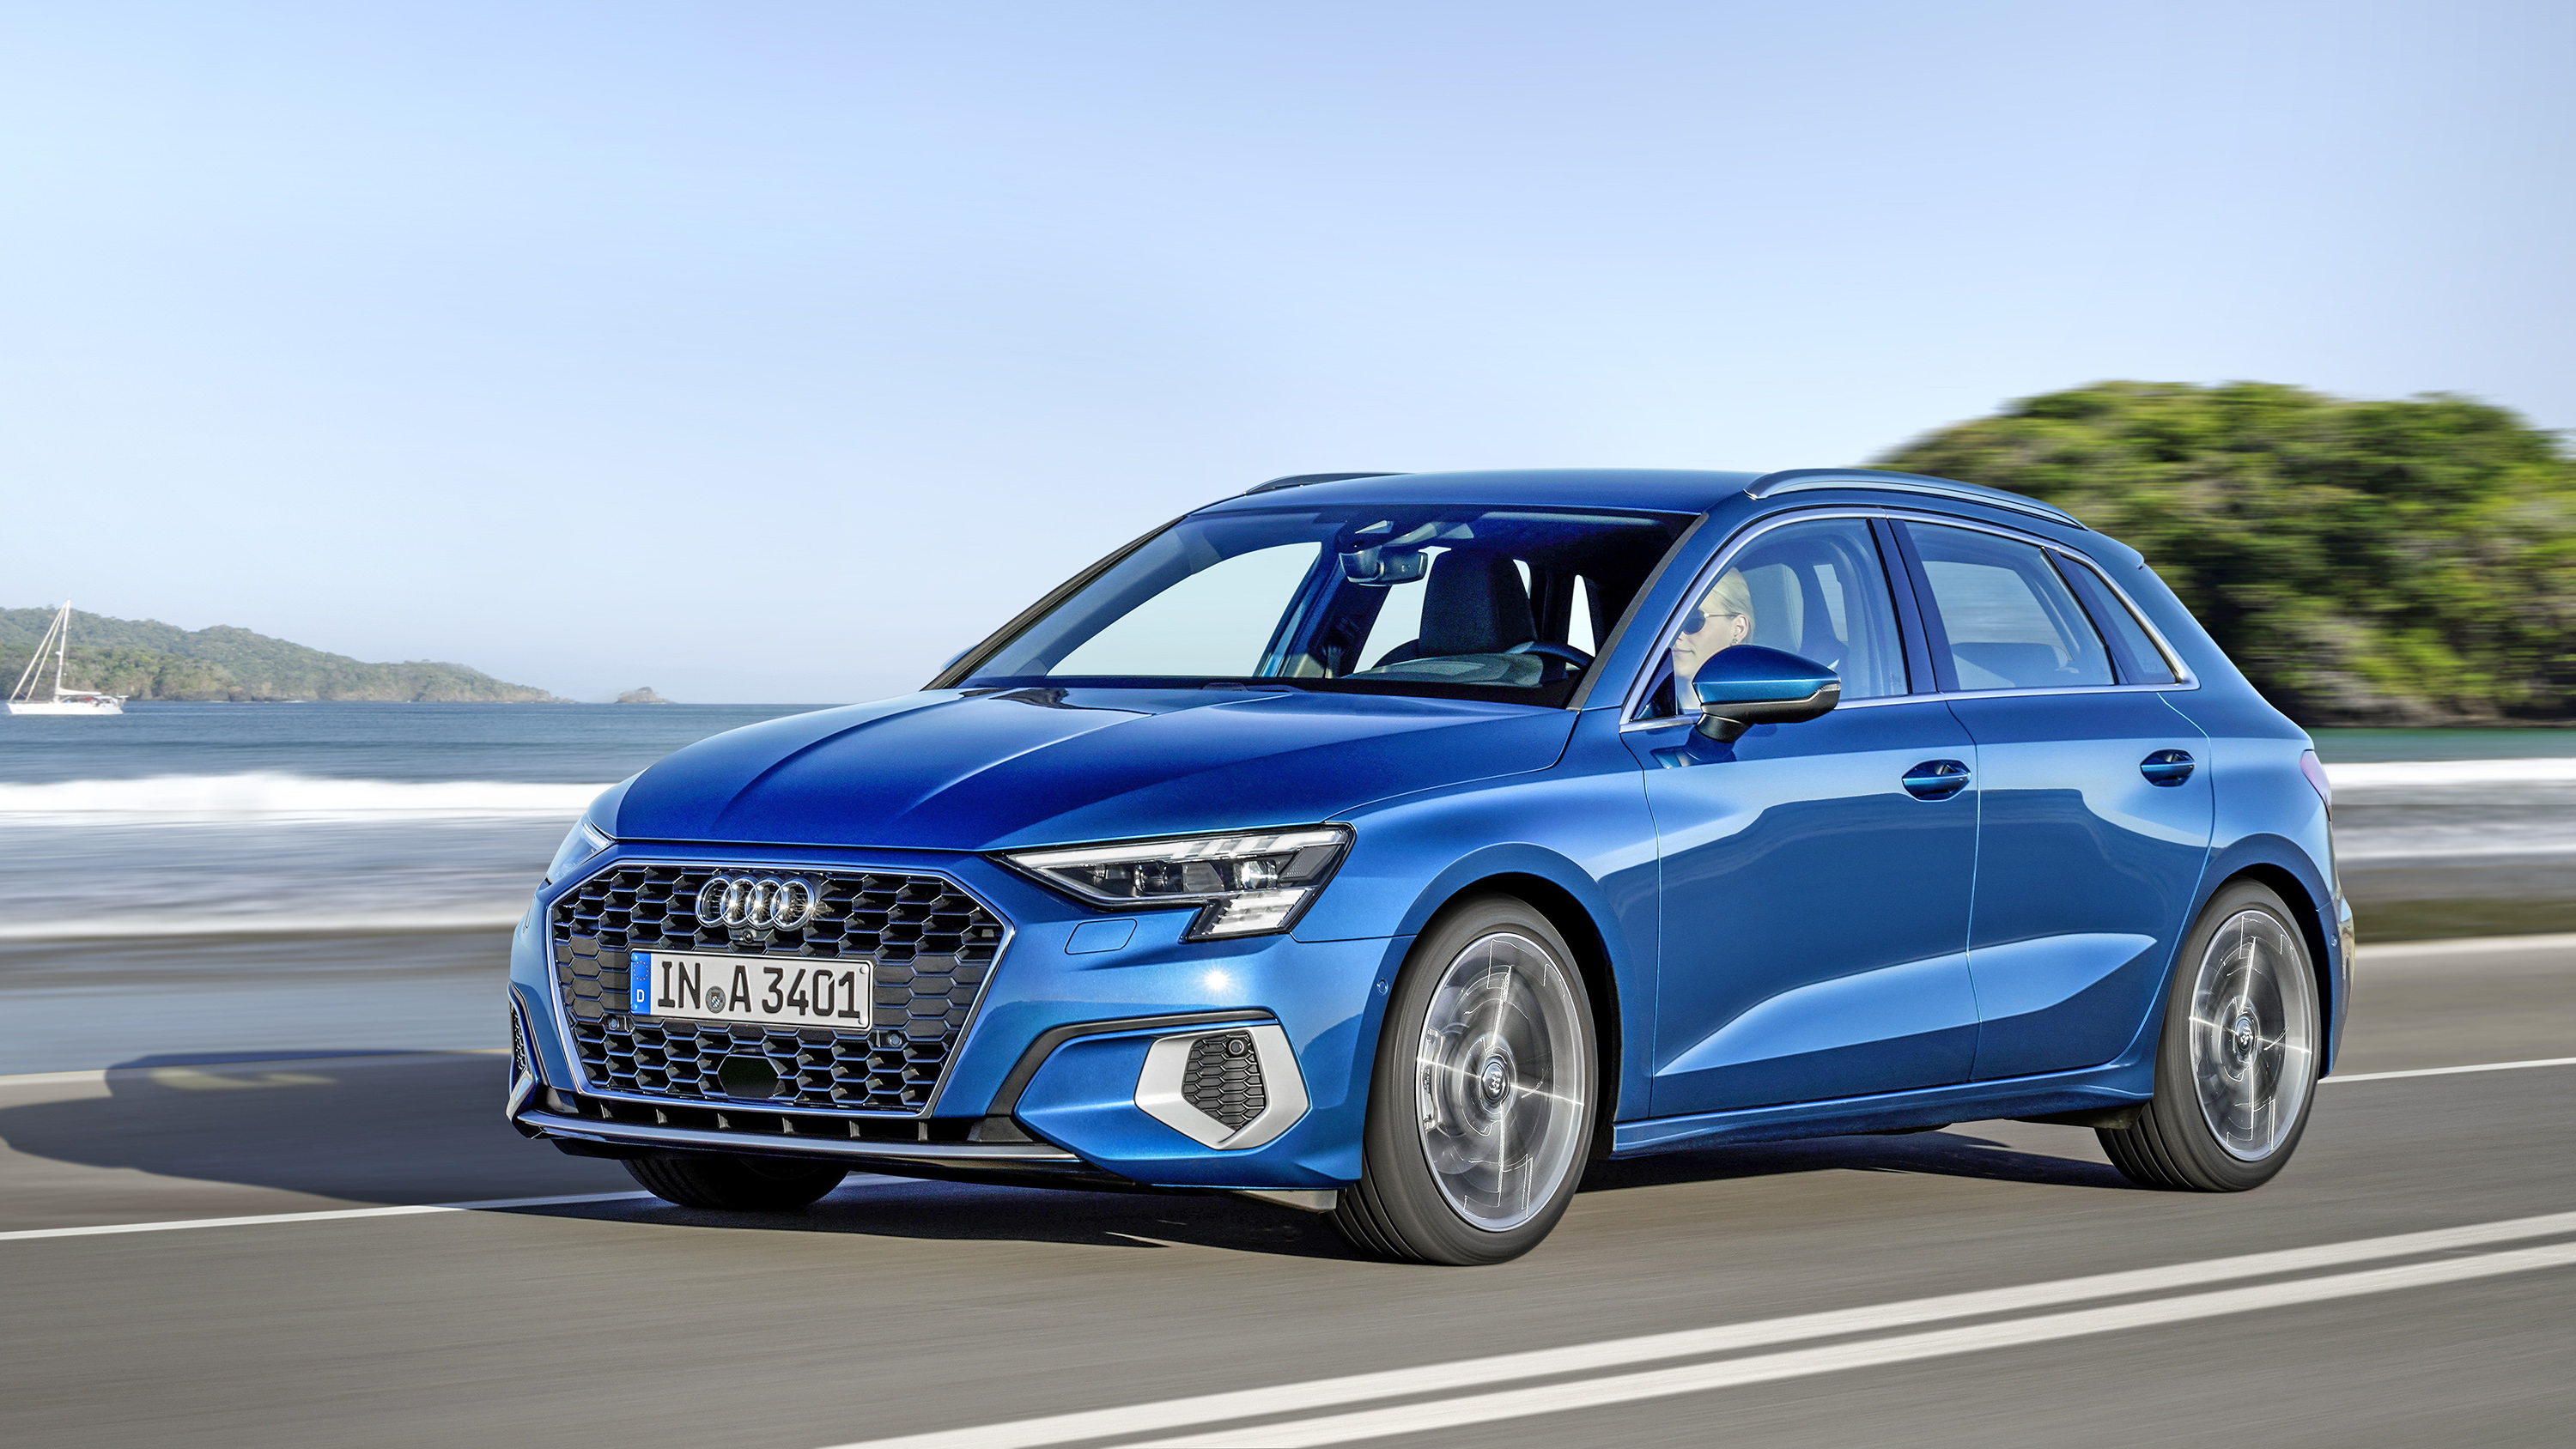 2020 Audi A3 Specs Prices And More Buyacar